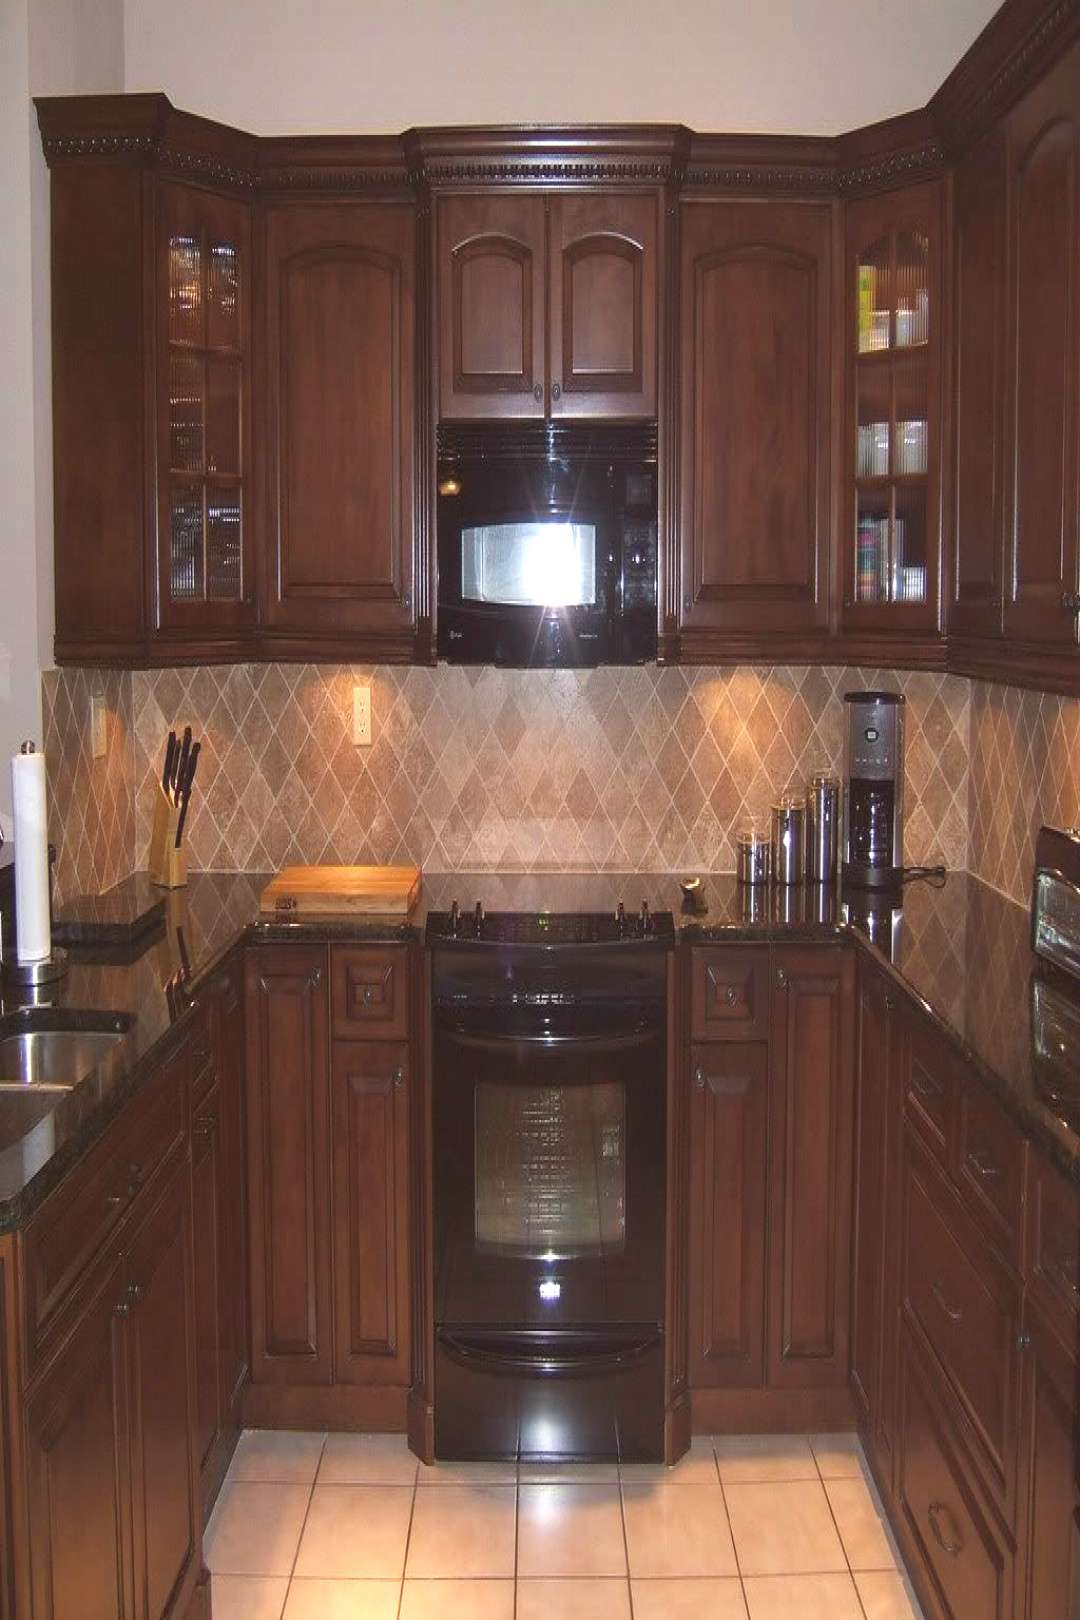 Best 92 reference of best floor color for espresso cabinets best floor color for espresso cabinets-